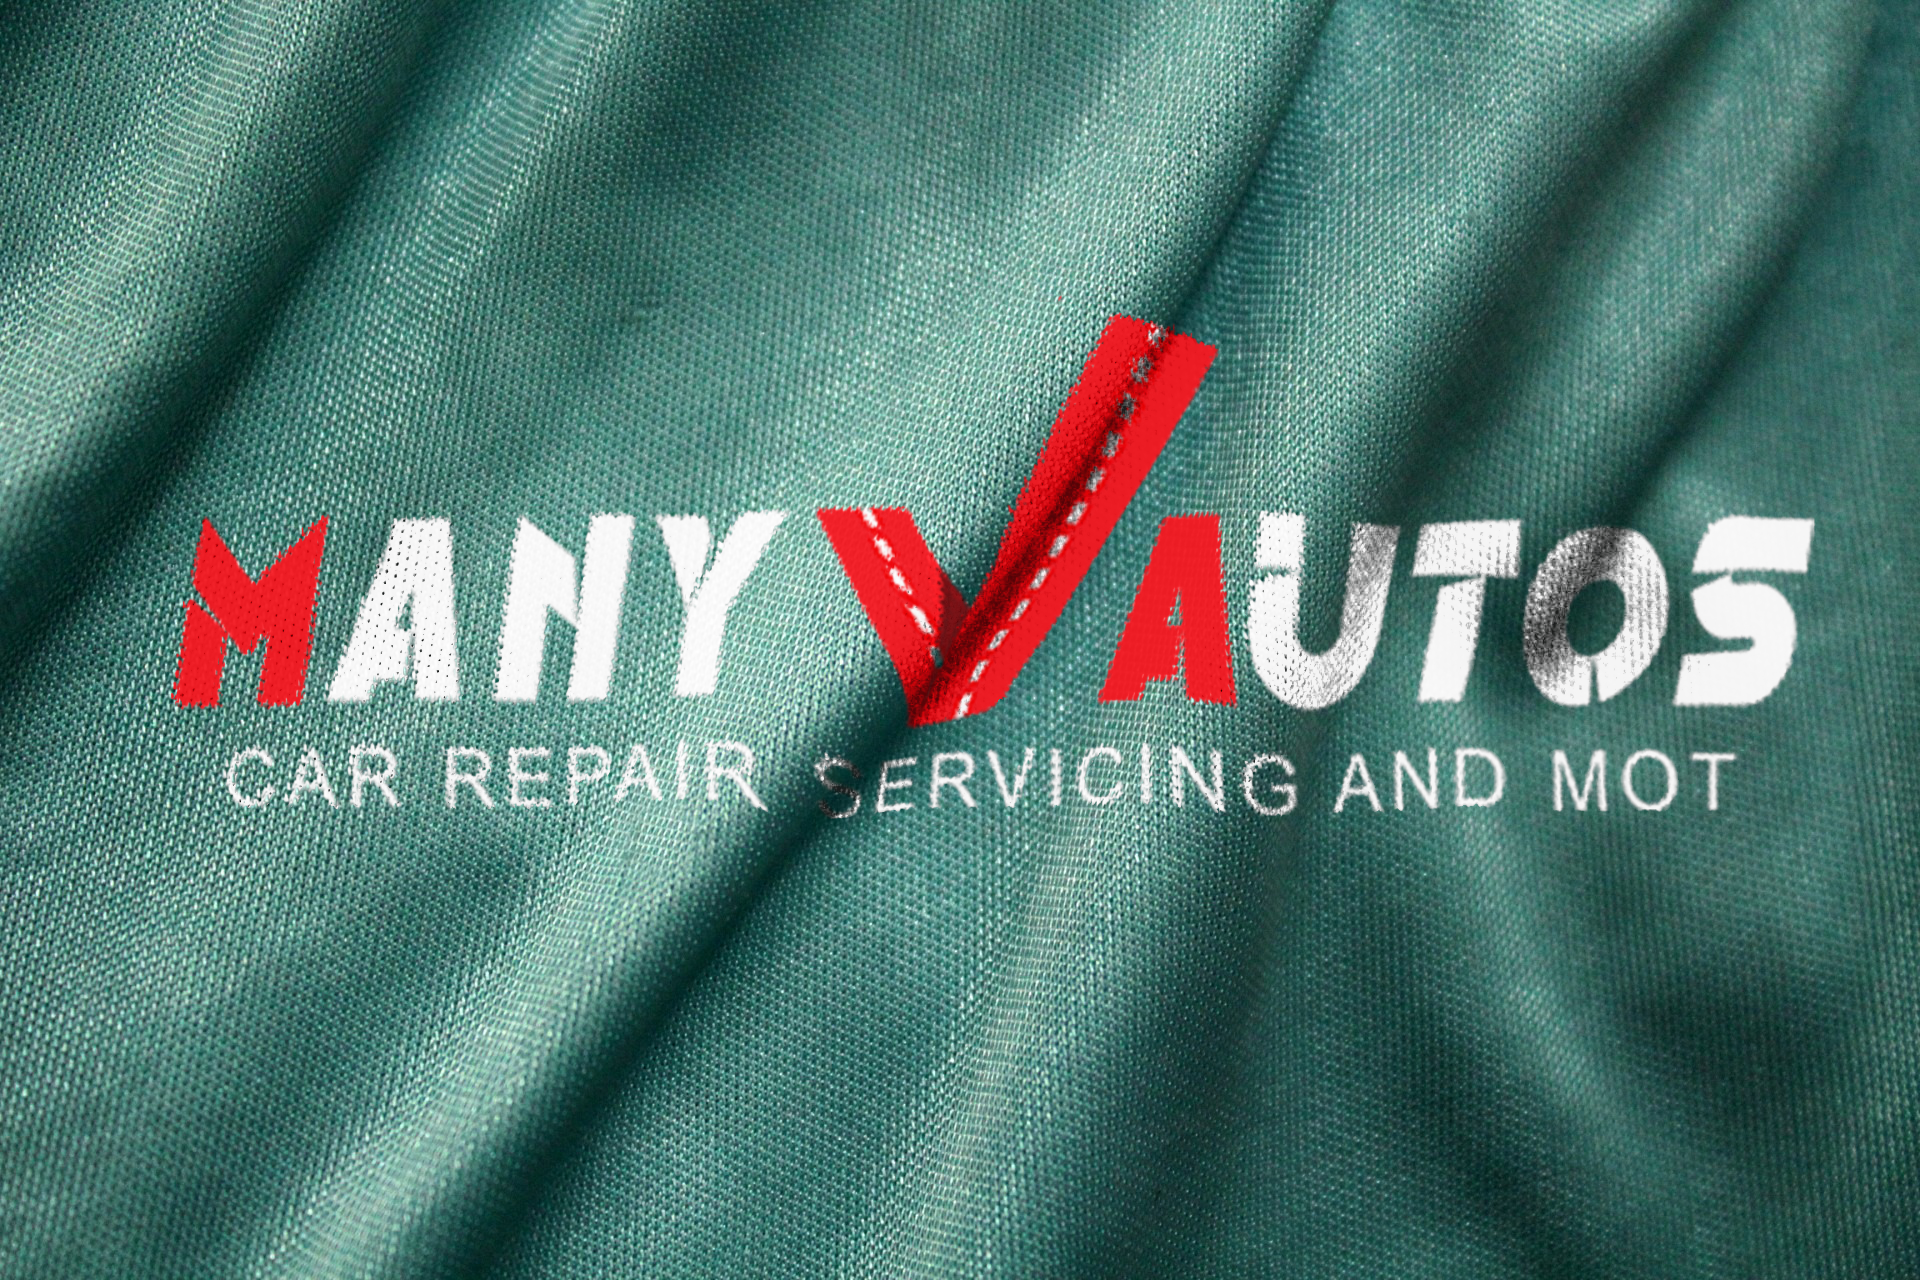 Worried something is wrong with your vehicle? We offer car